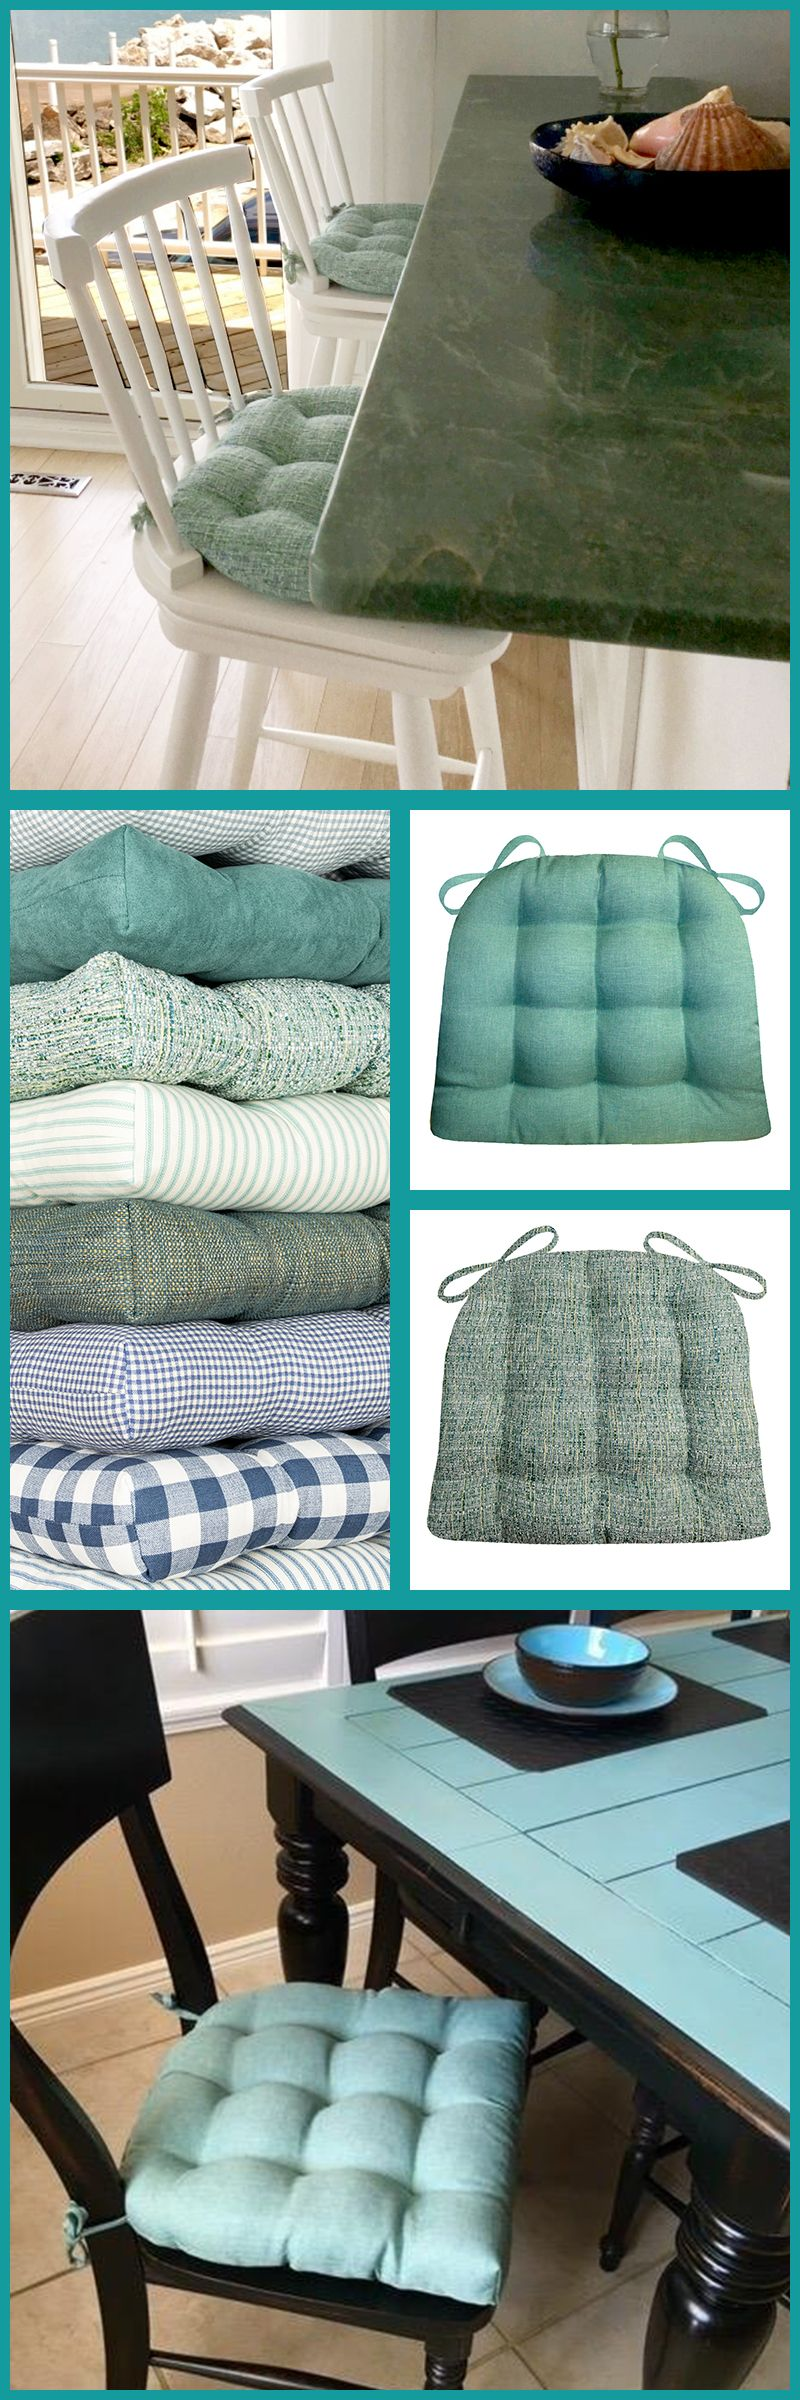 Barnett Home Decor Has The Perfect Aqua Turquoise Teal Or Blue Dining Chair Pad For Your Beach Or Coastal Dec Home Decor Blue Dining Chair Dining Chair Pads